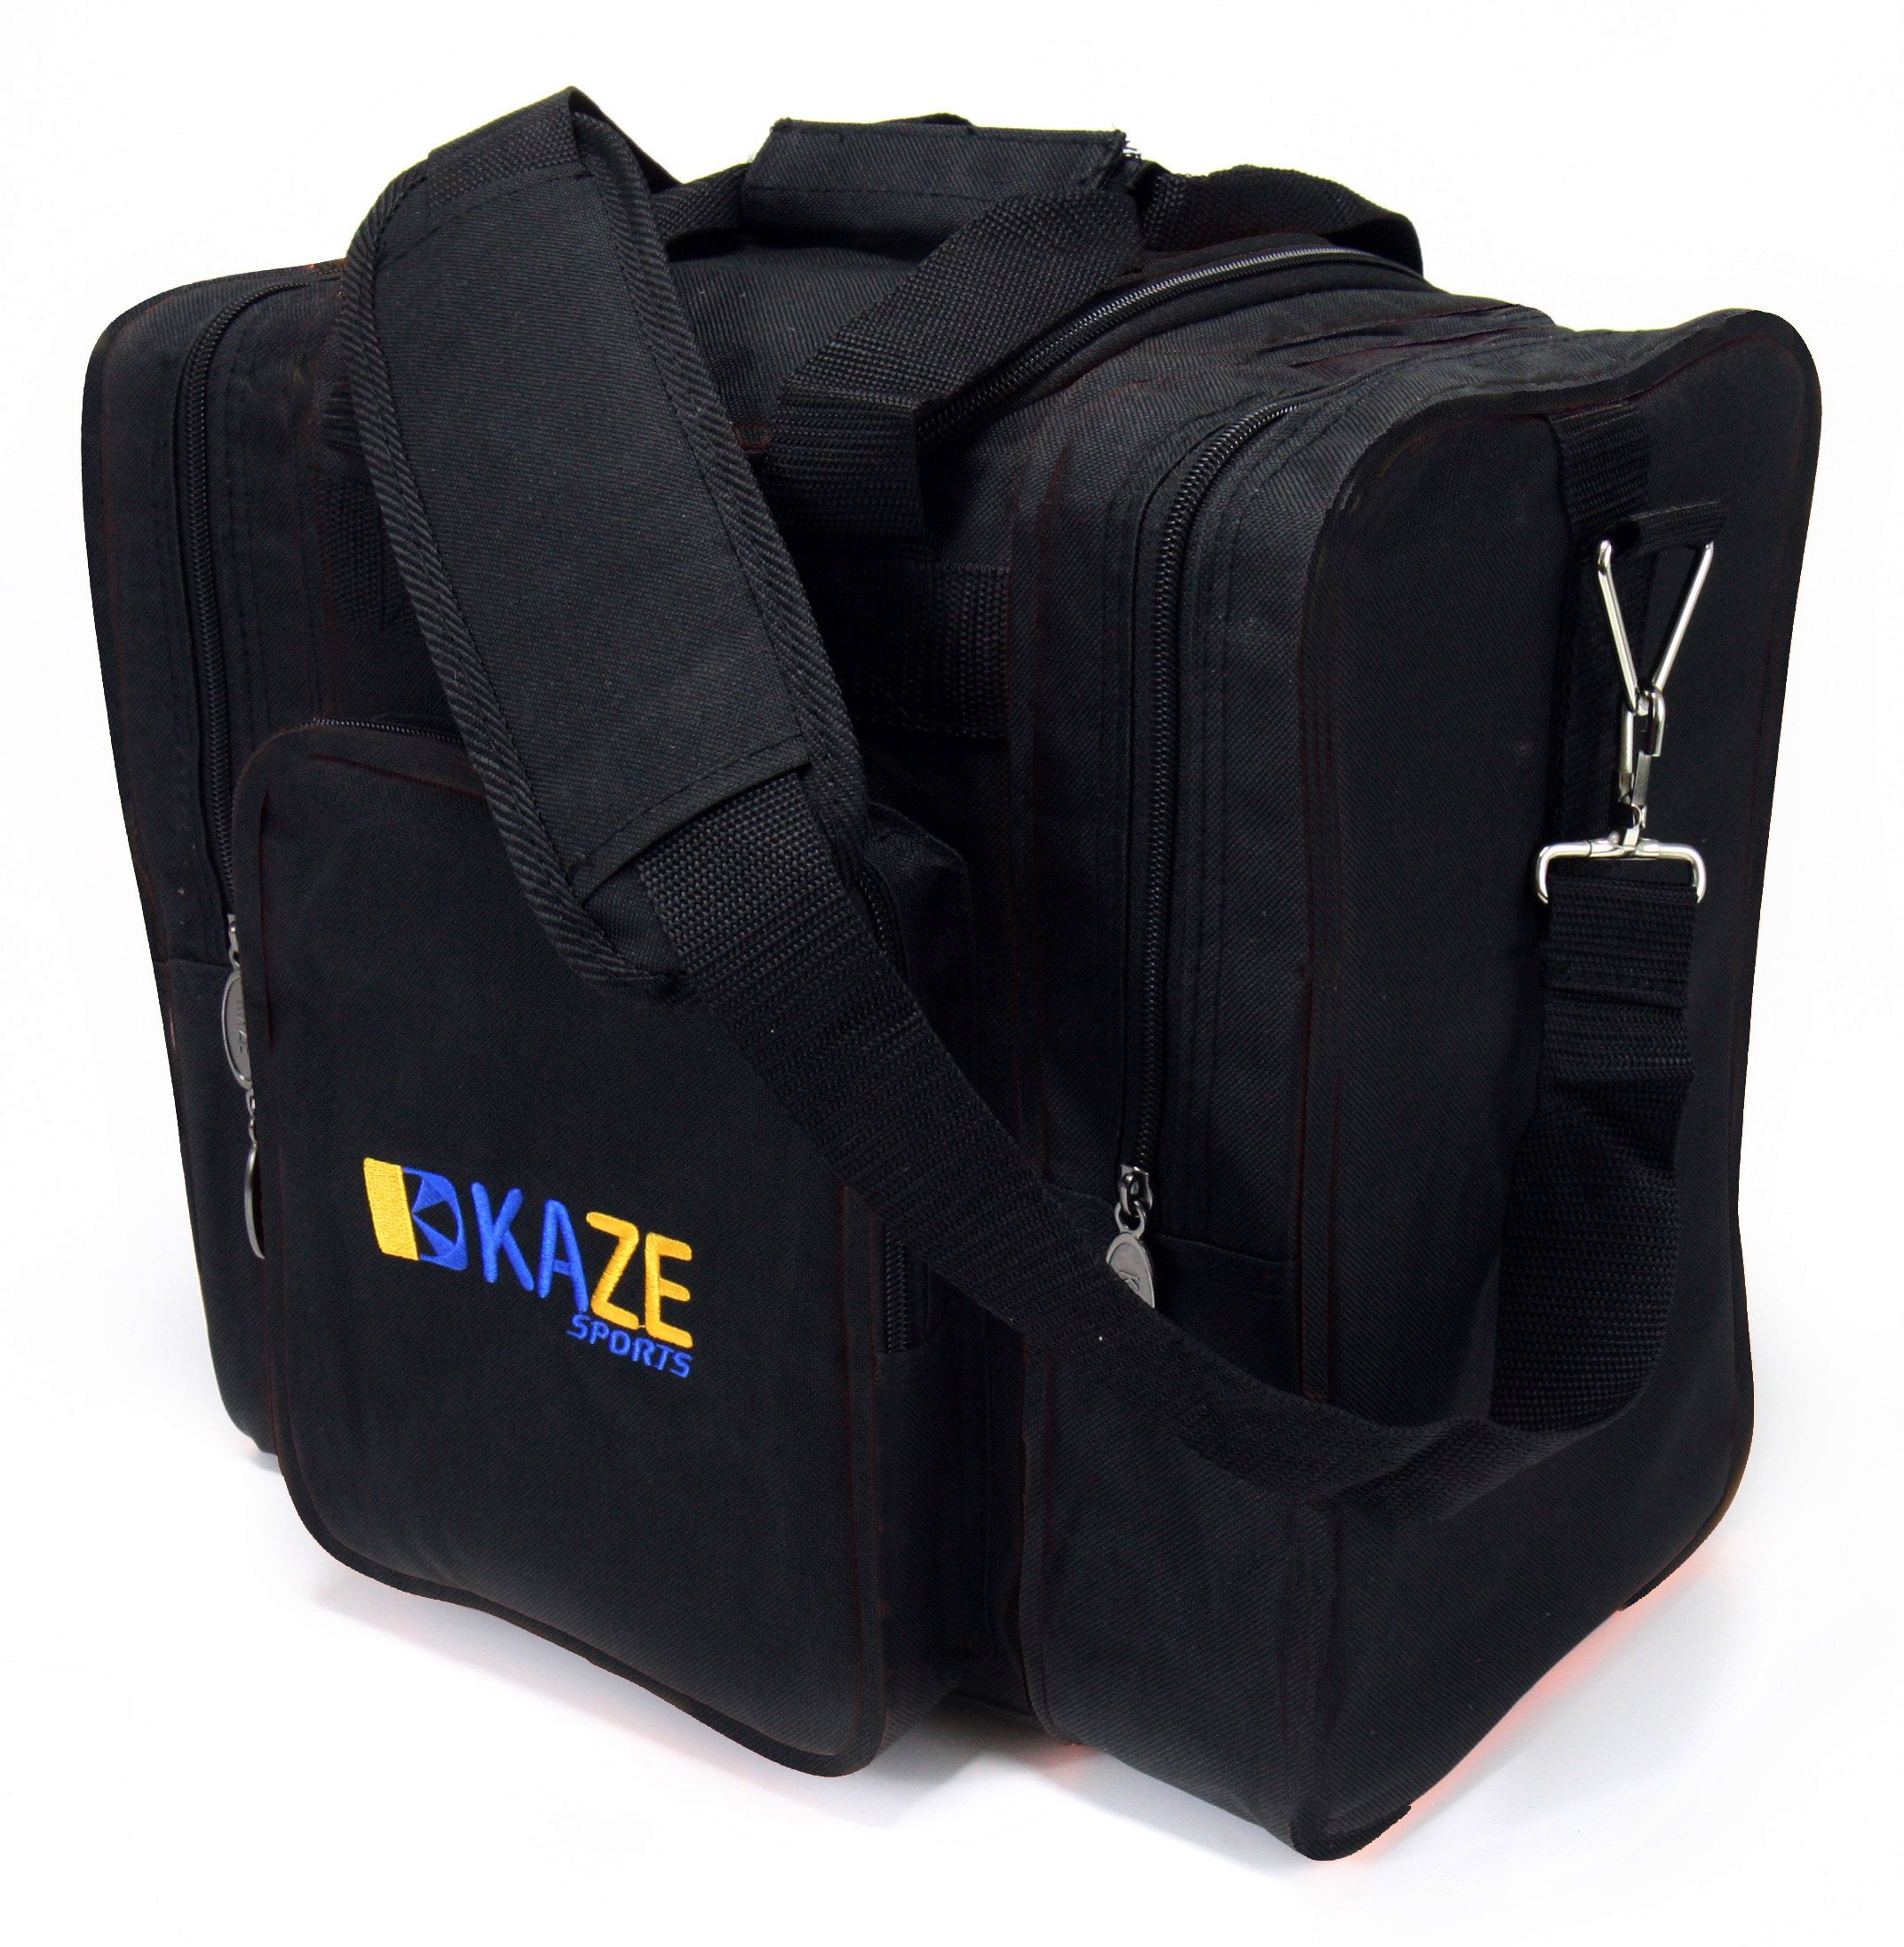 KAZE SPORTS Deluxe 1 Ball Bowling Tote with Two Side Pockets (Black-Black)